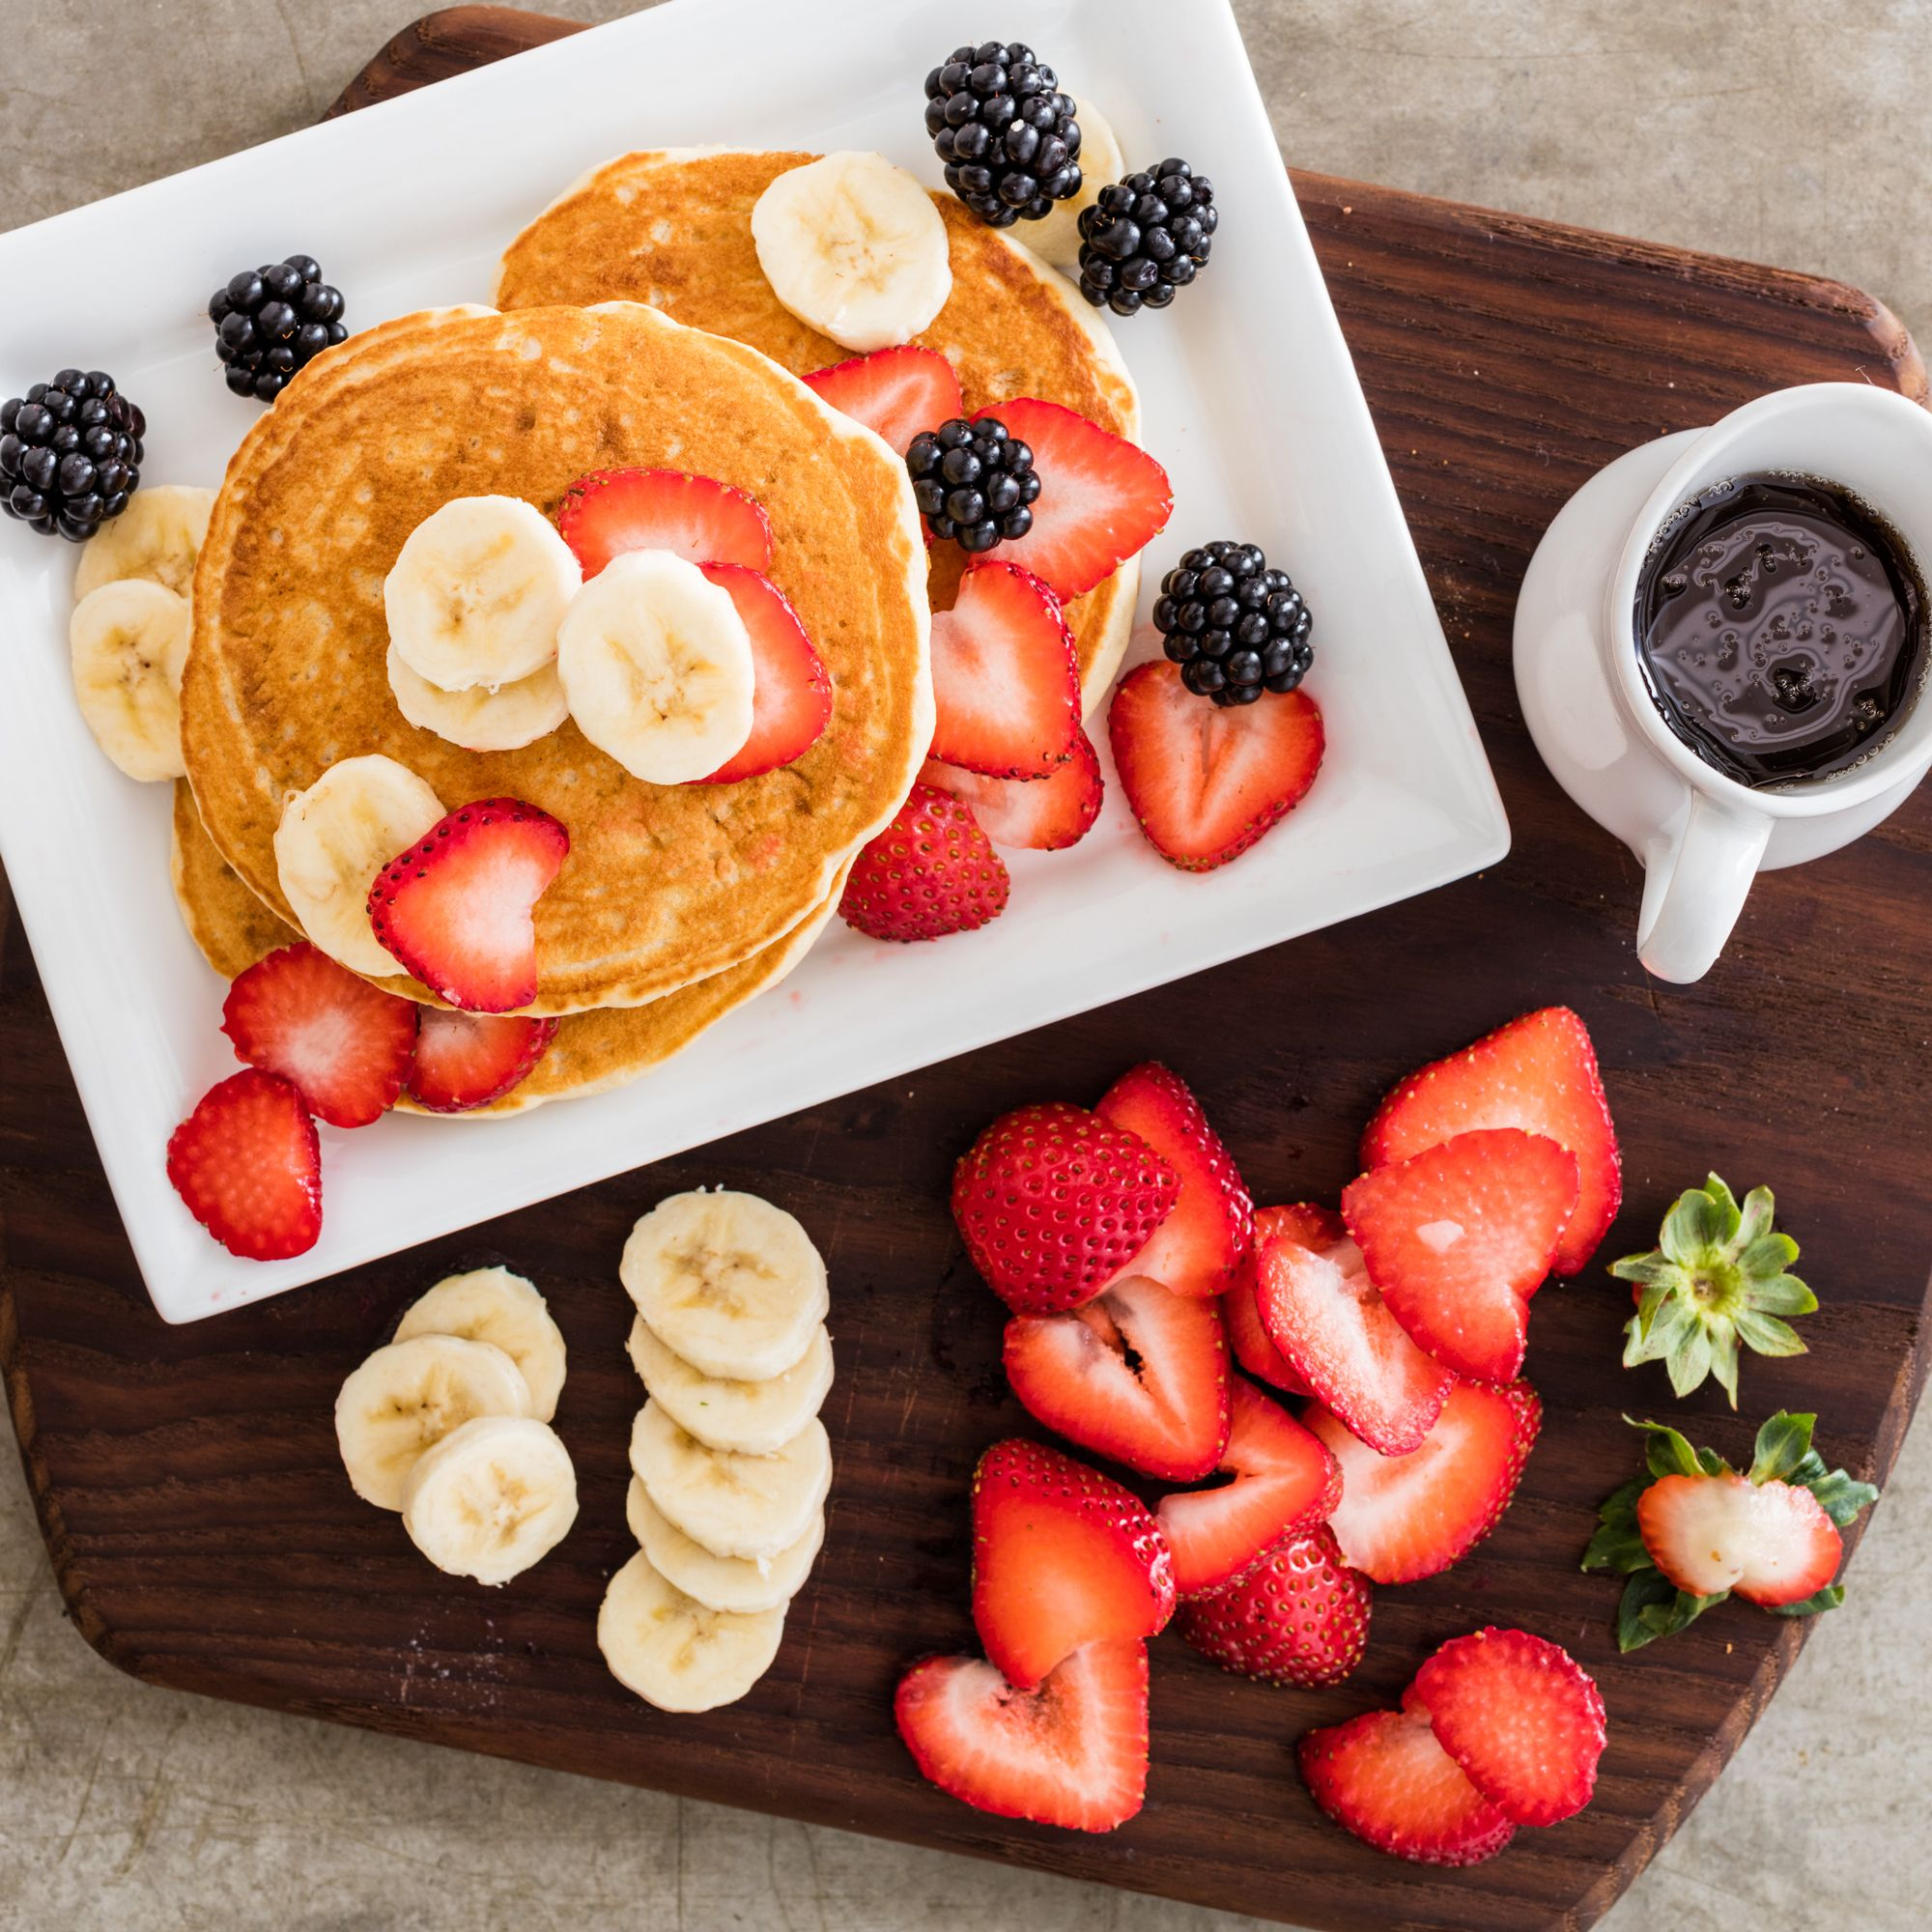 Learn to make fluffy, flavorful pancakes from scratch. Use these easy tricks with your favorite pancake recipe, from basic pancakes to blueberry pancakes.